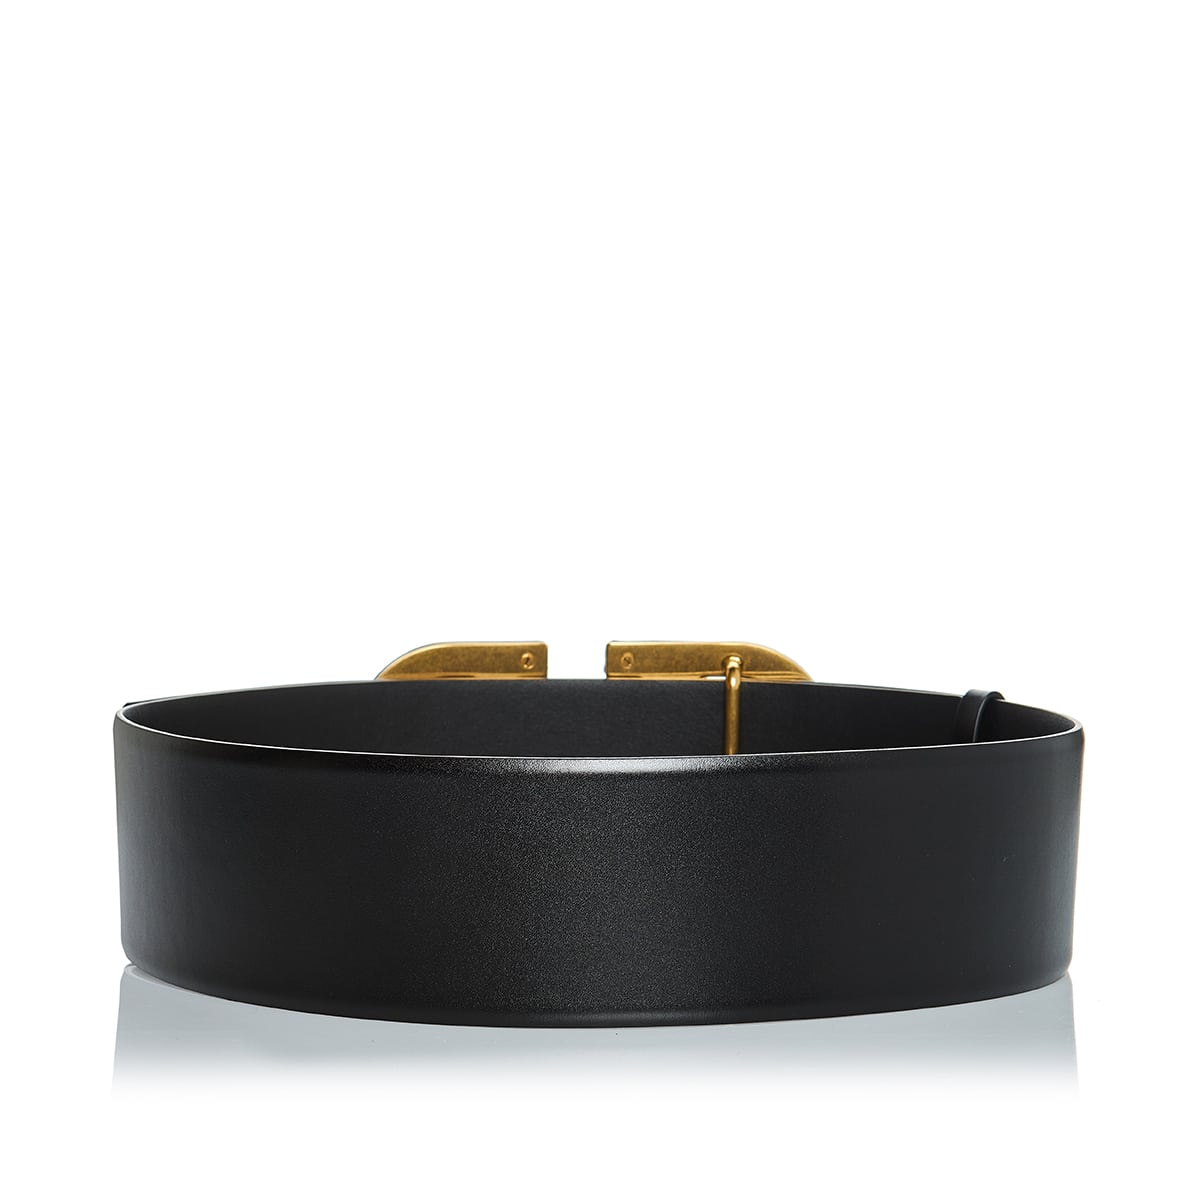 Vlogo wide leather belt